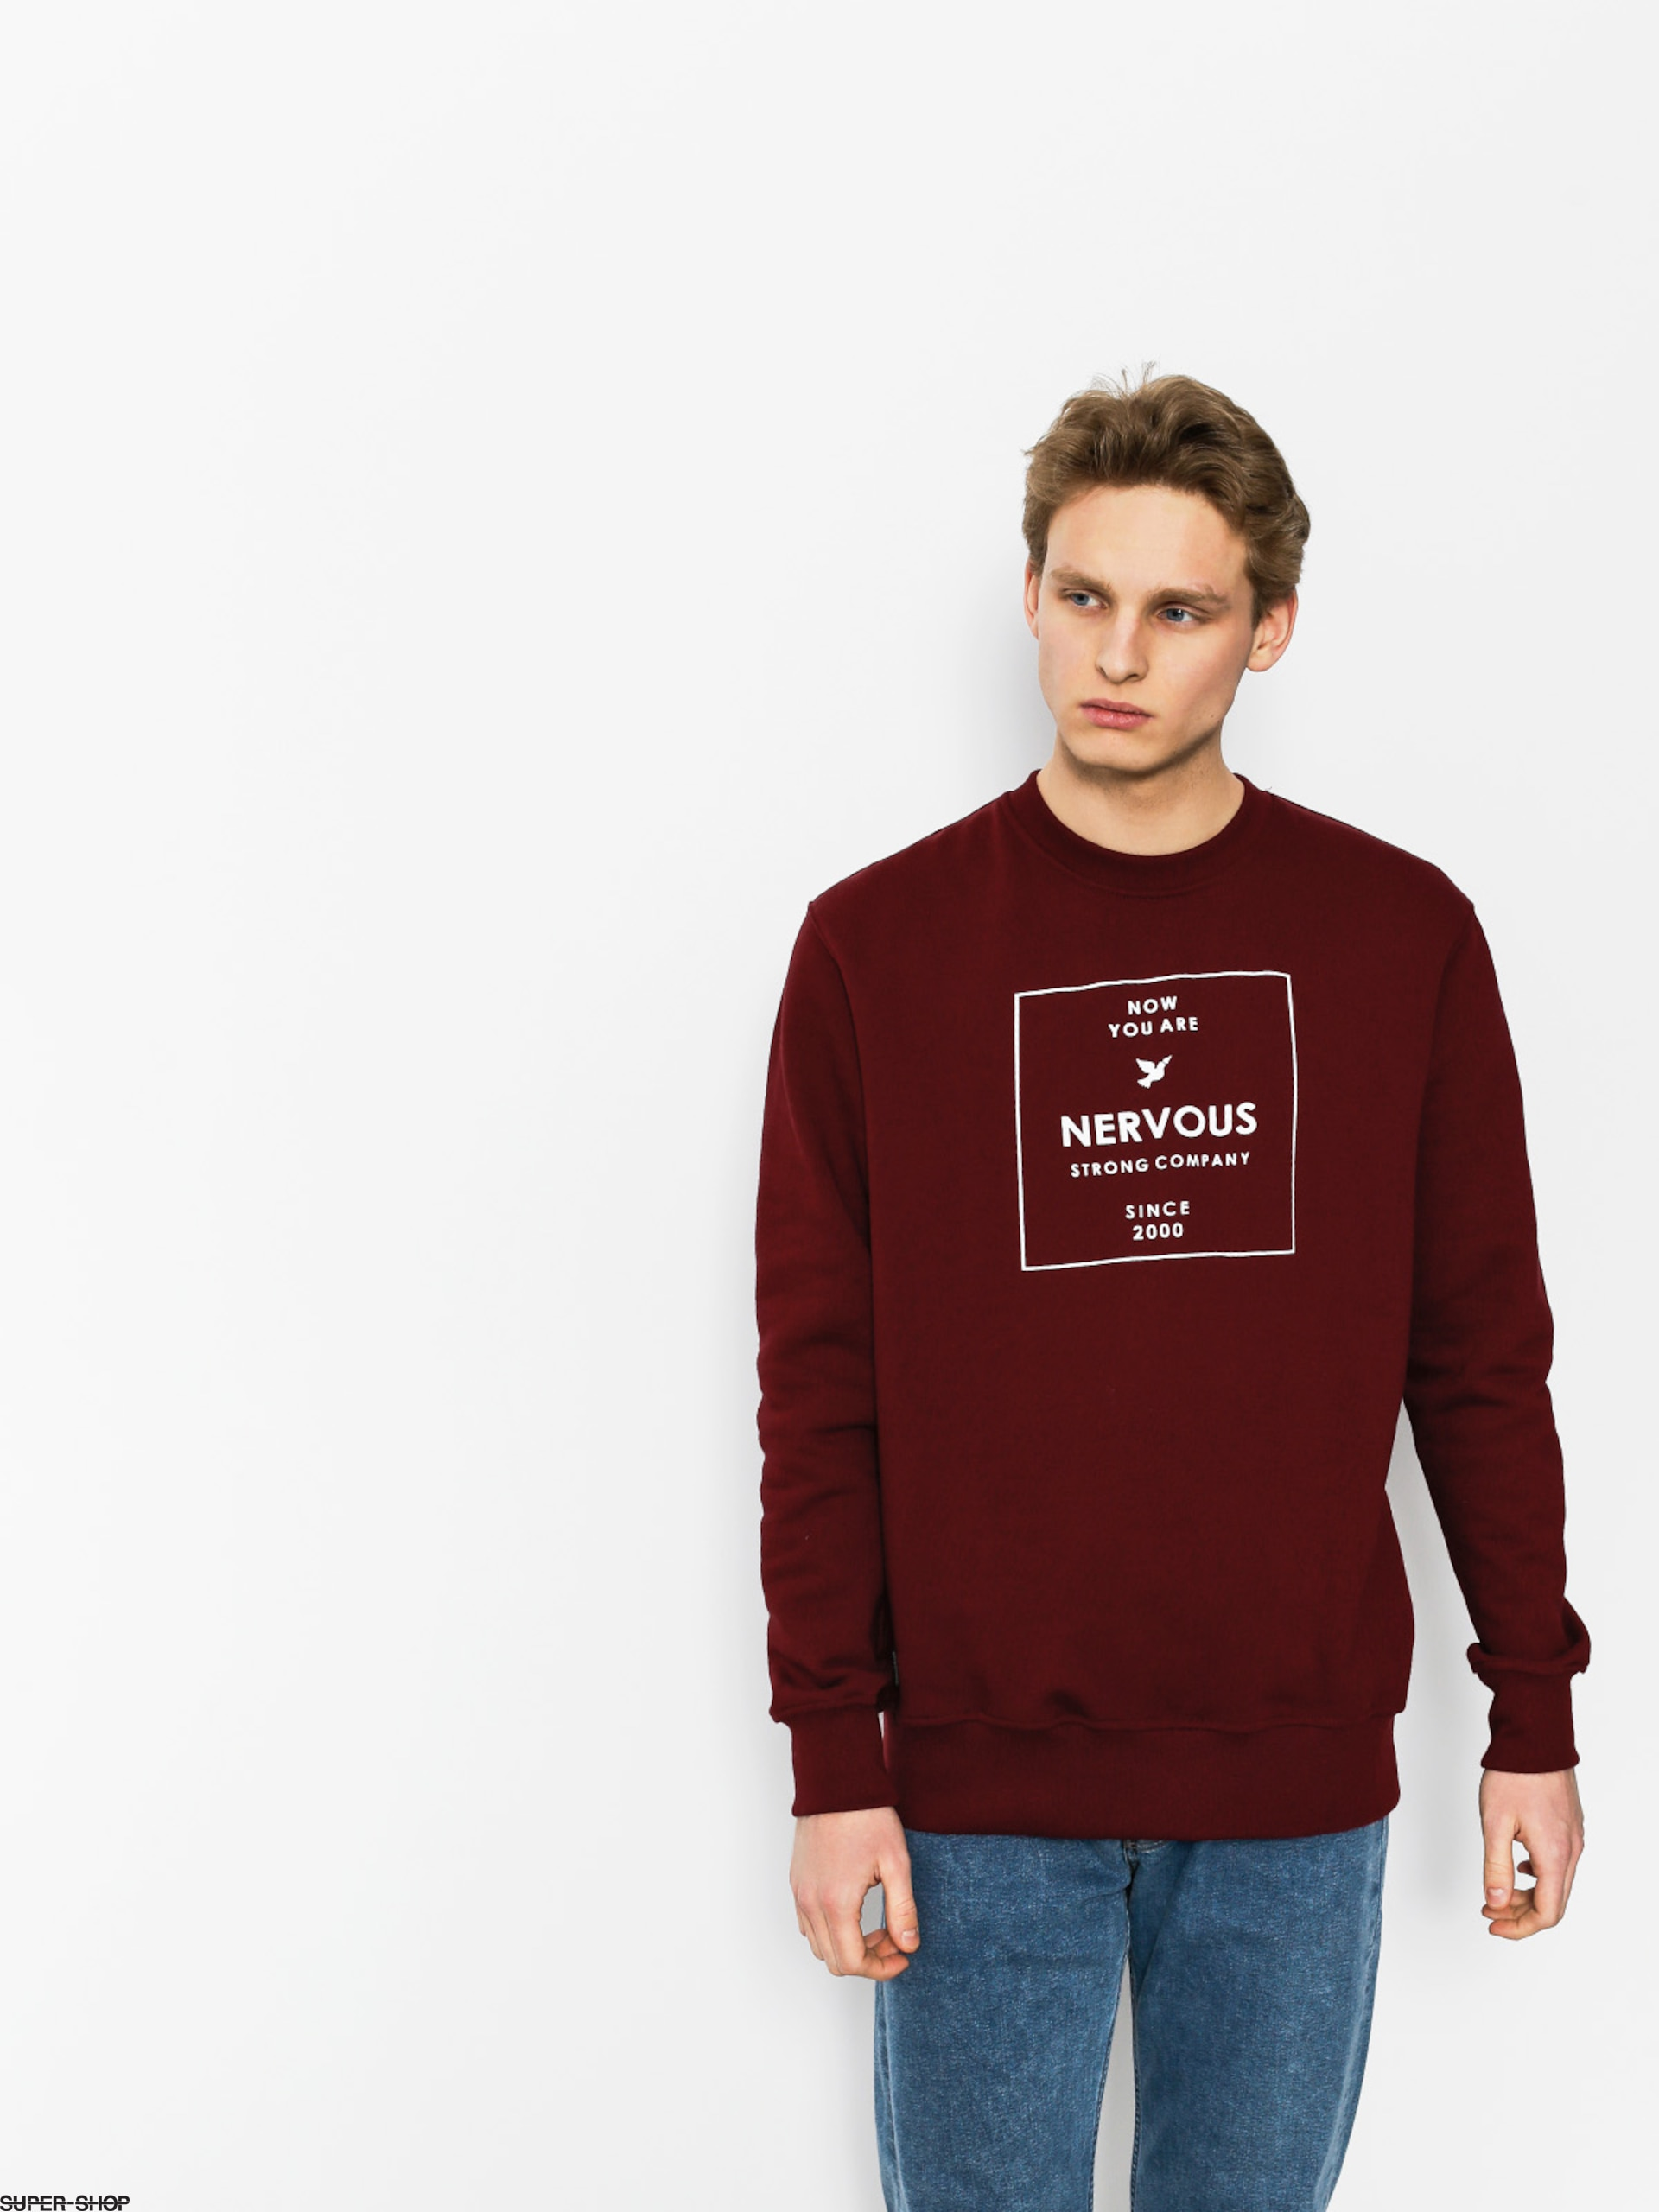 Nervous Sweatshirt Lightbox (maroon)